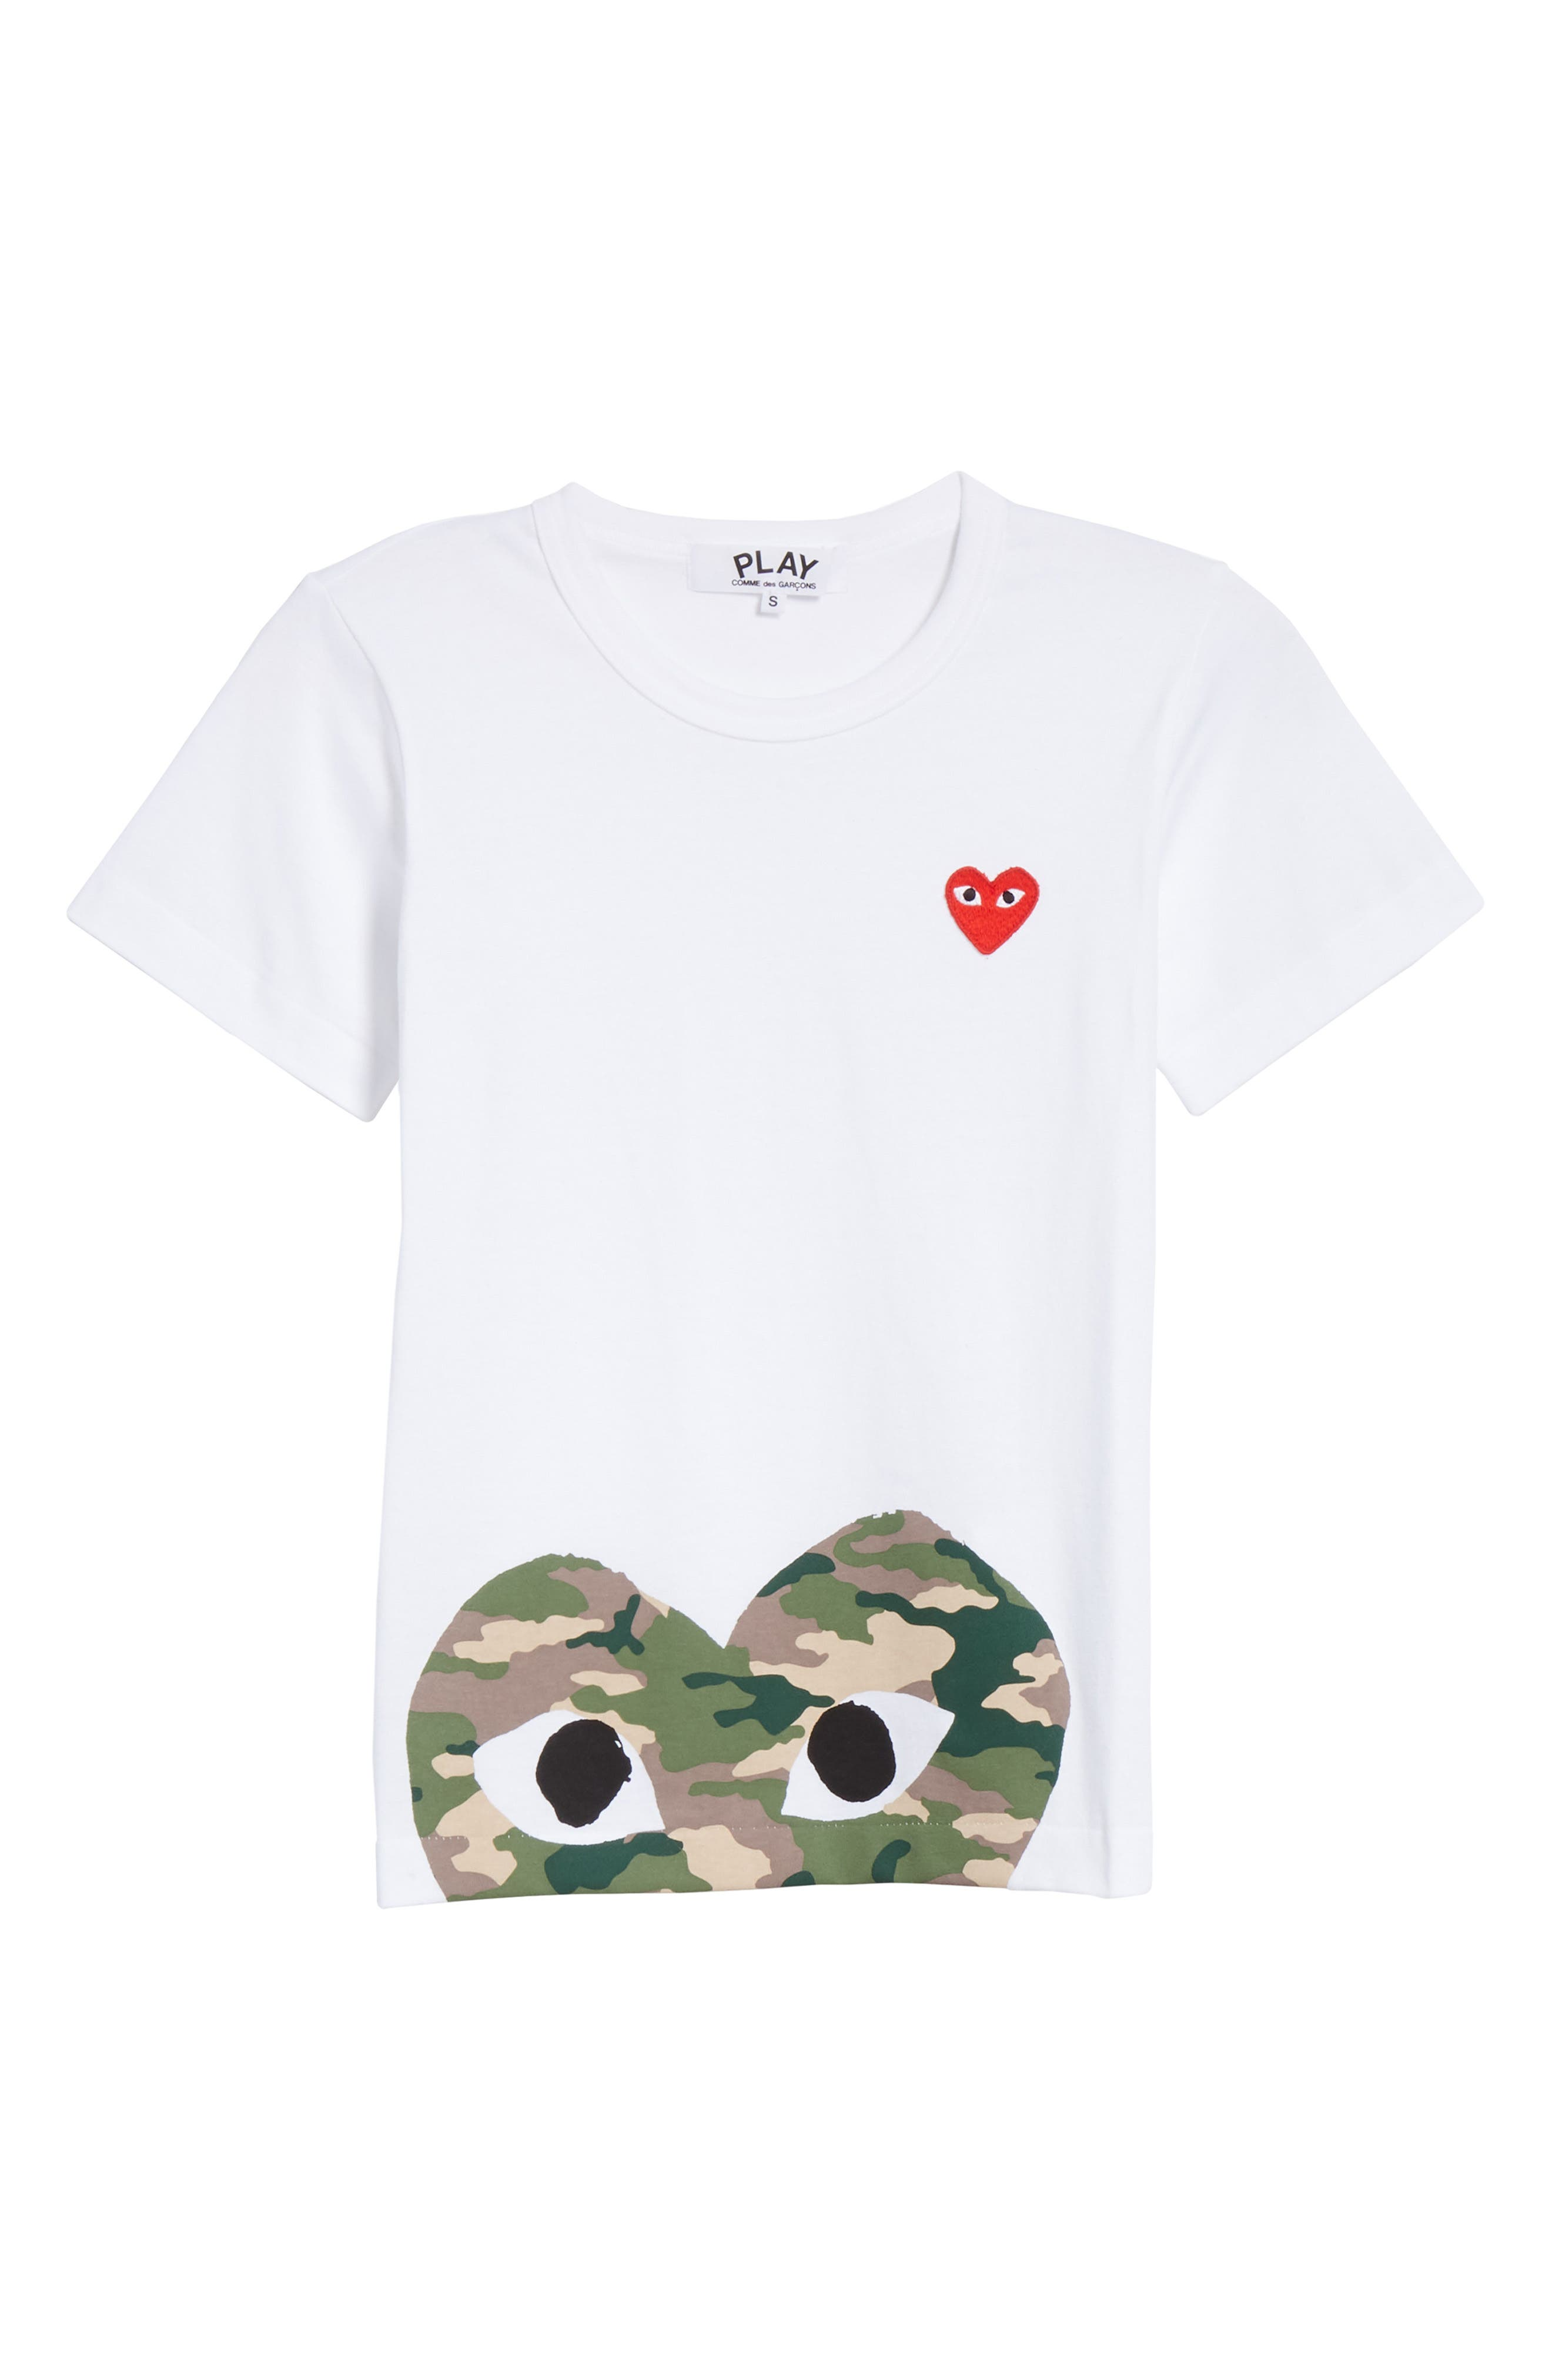 PLAY Graphic Tee,                             Alternate thumbnail 6, color,                             WHITE